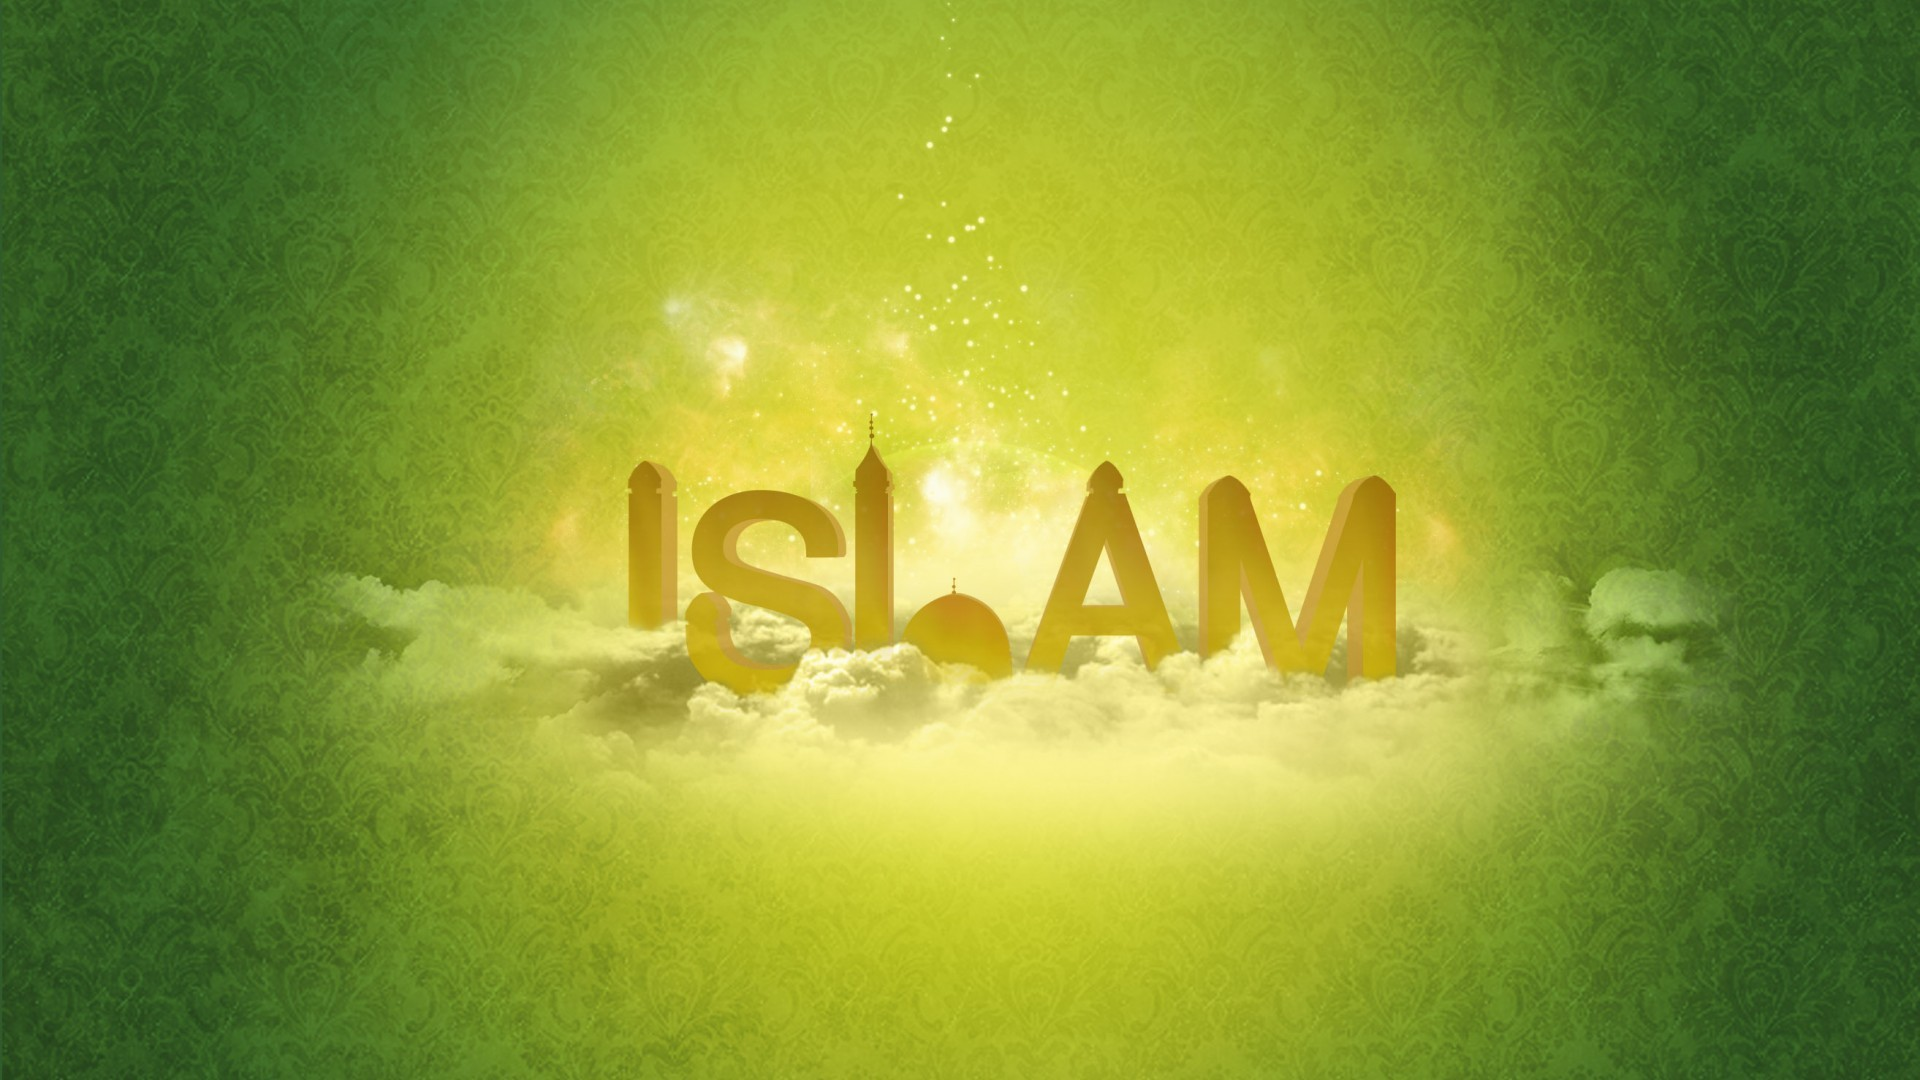 Res: 1920x1080, ... Elegant Super High Quality Images of Islam,  px ...